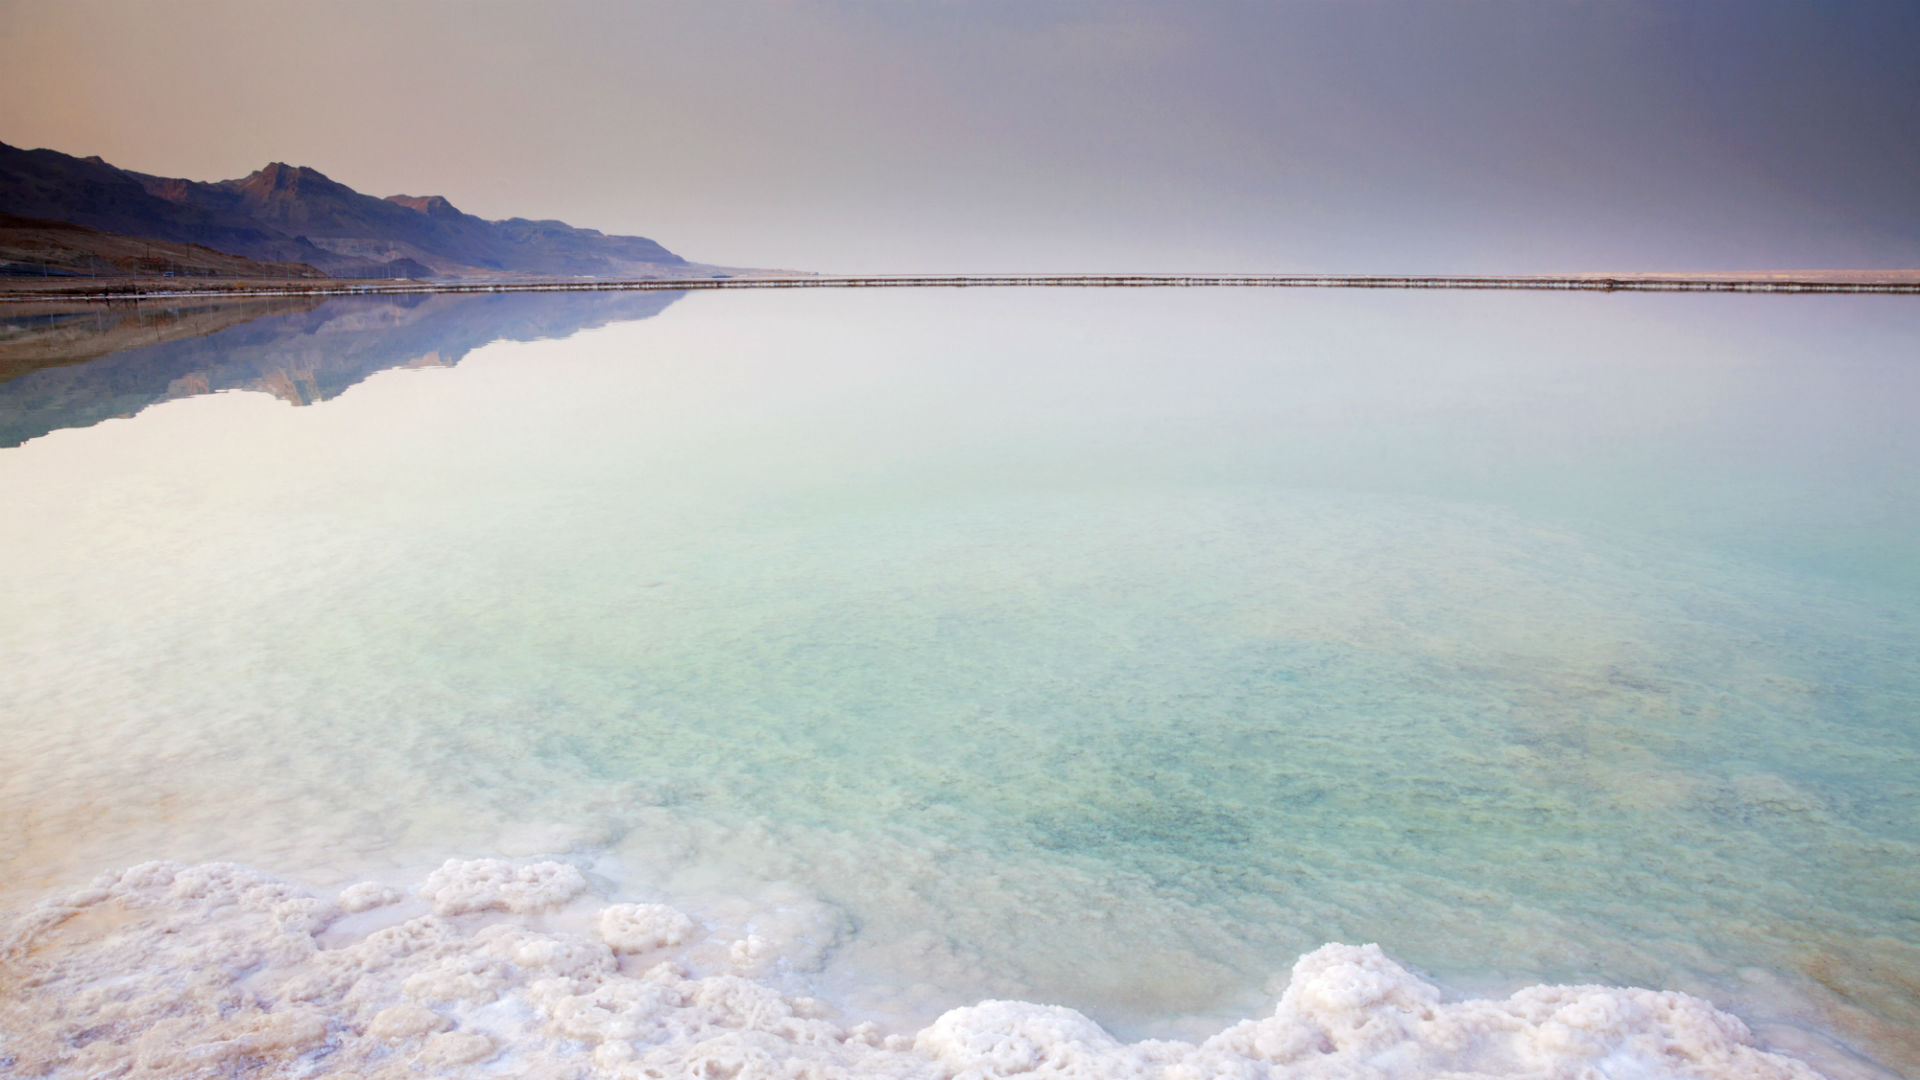 The Southern part of the dead sea in Israel with salt formations on the shore and colors due to its mineral and salt formations.